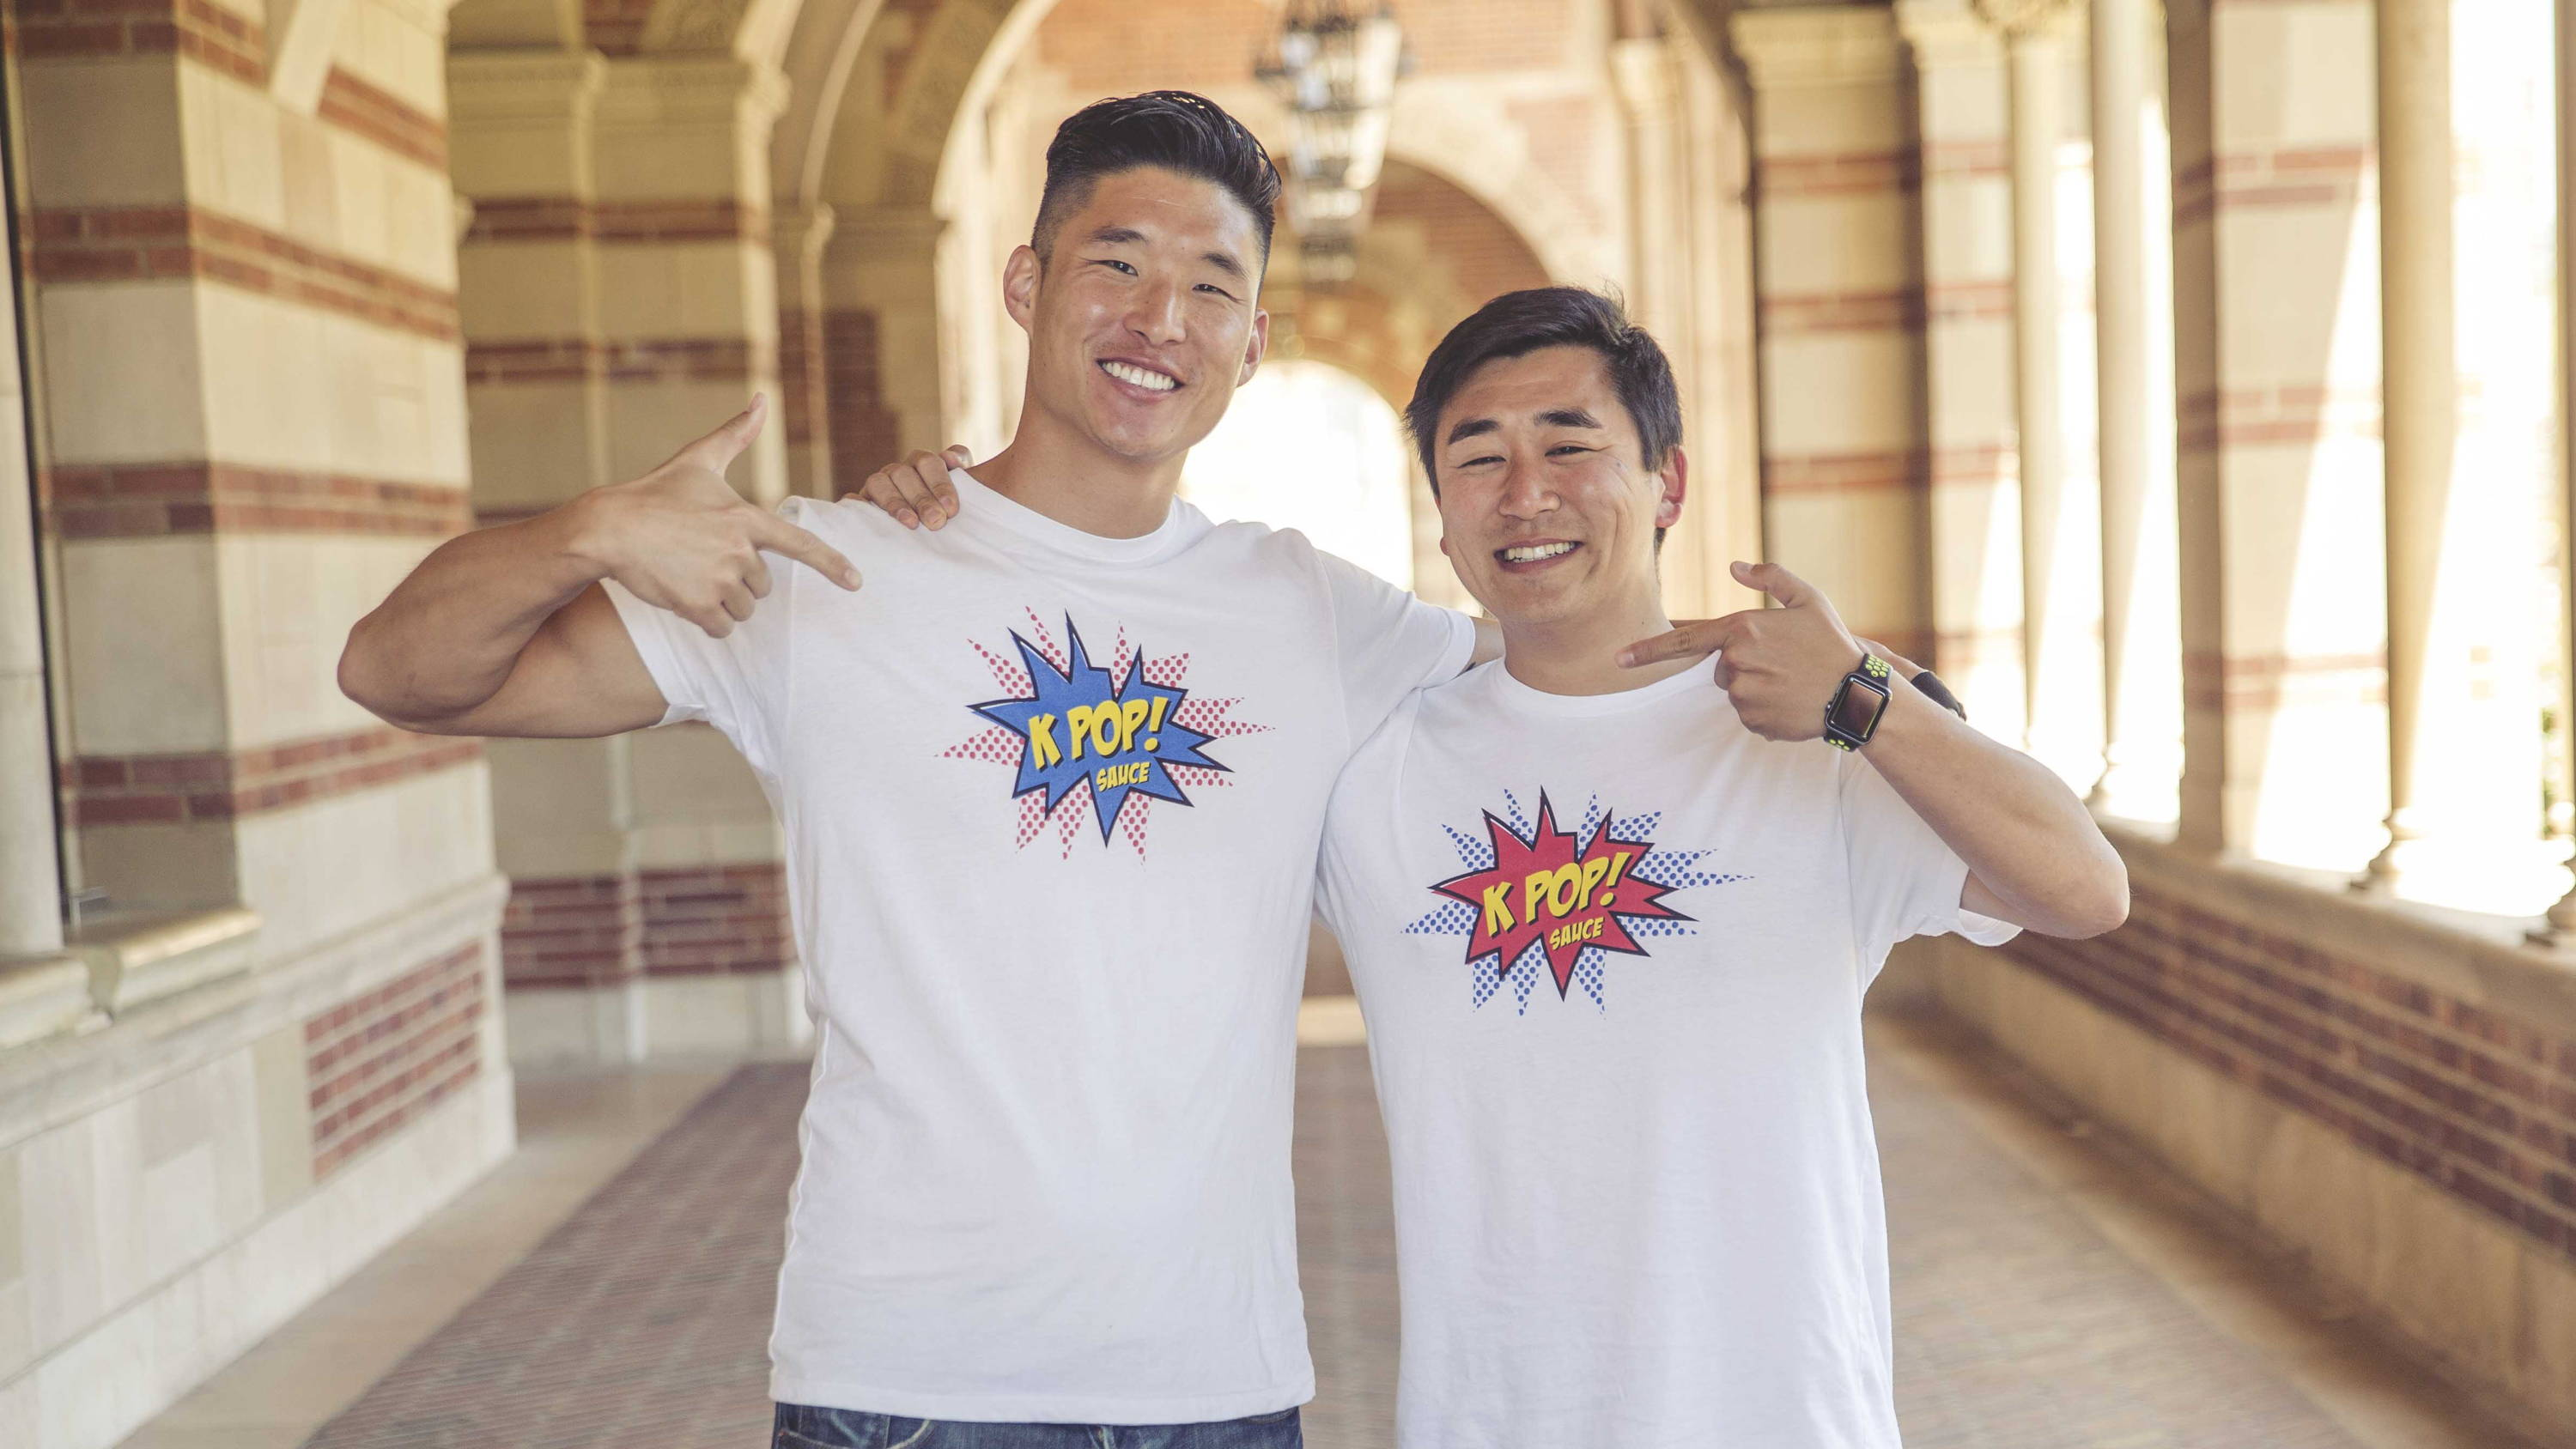 KPOP Sauce founders Theo and Mike pose at UCLA